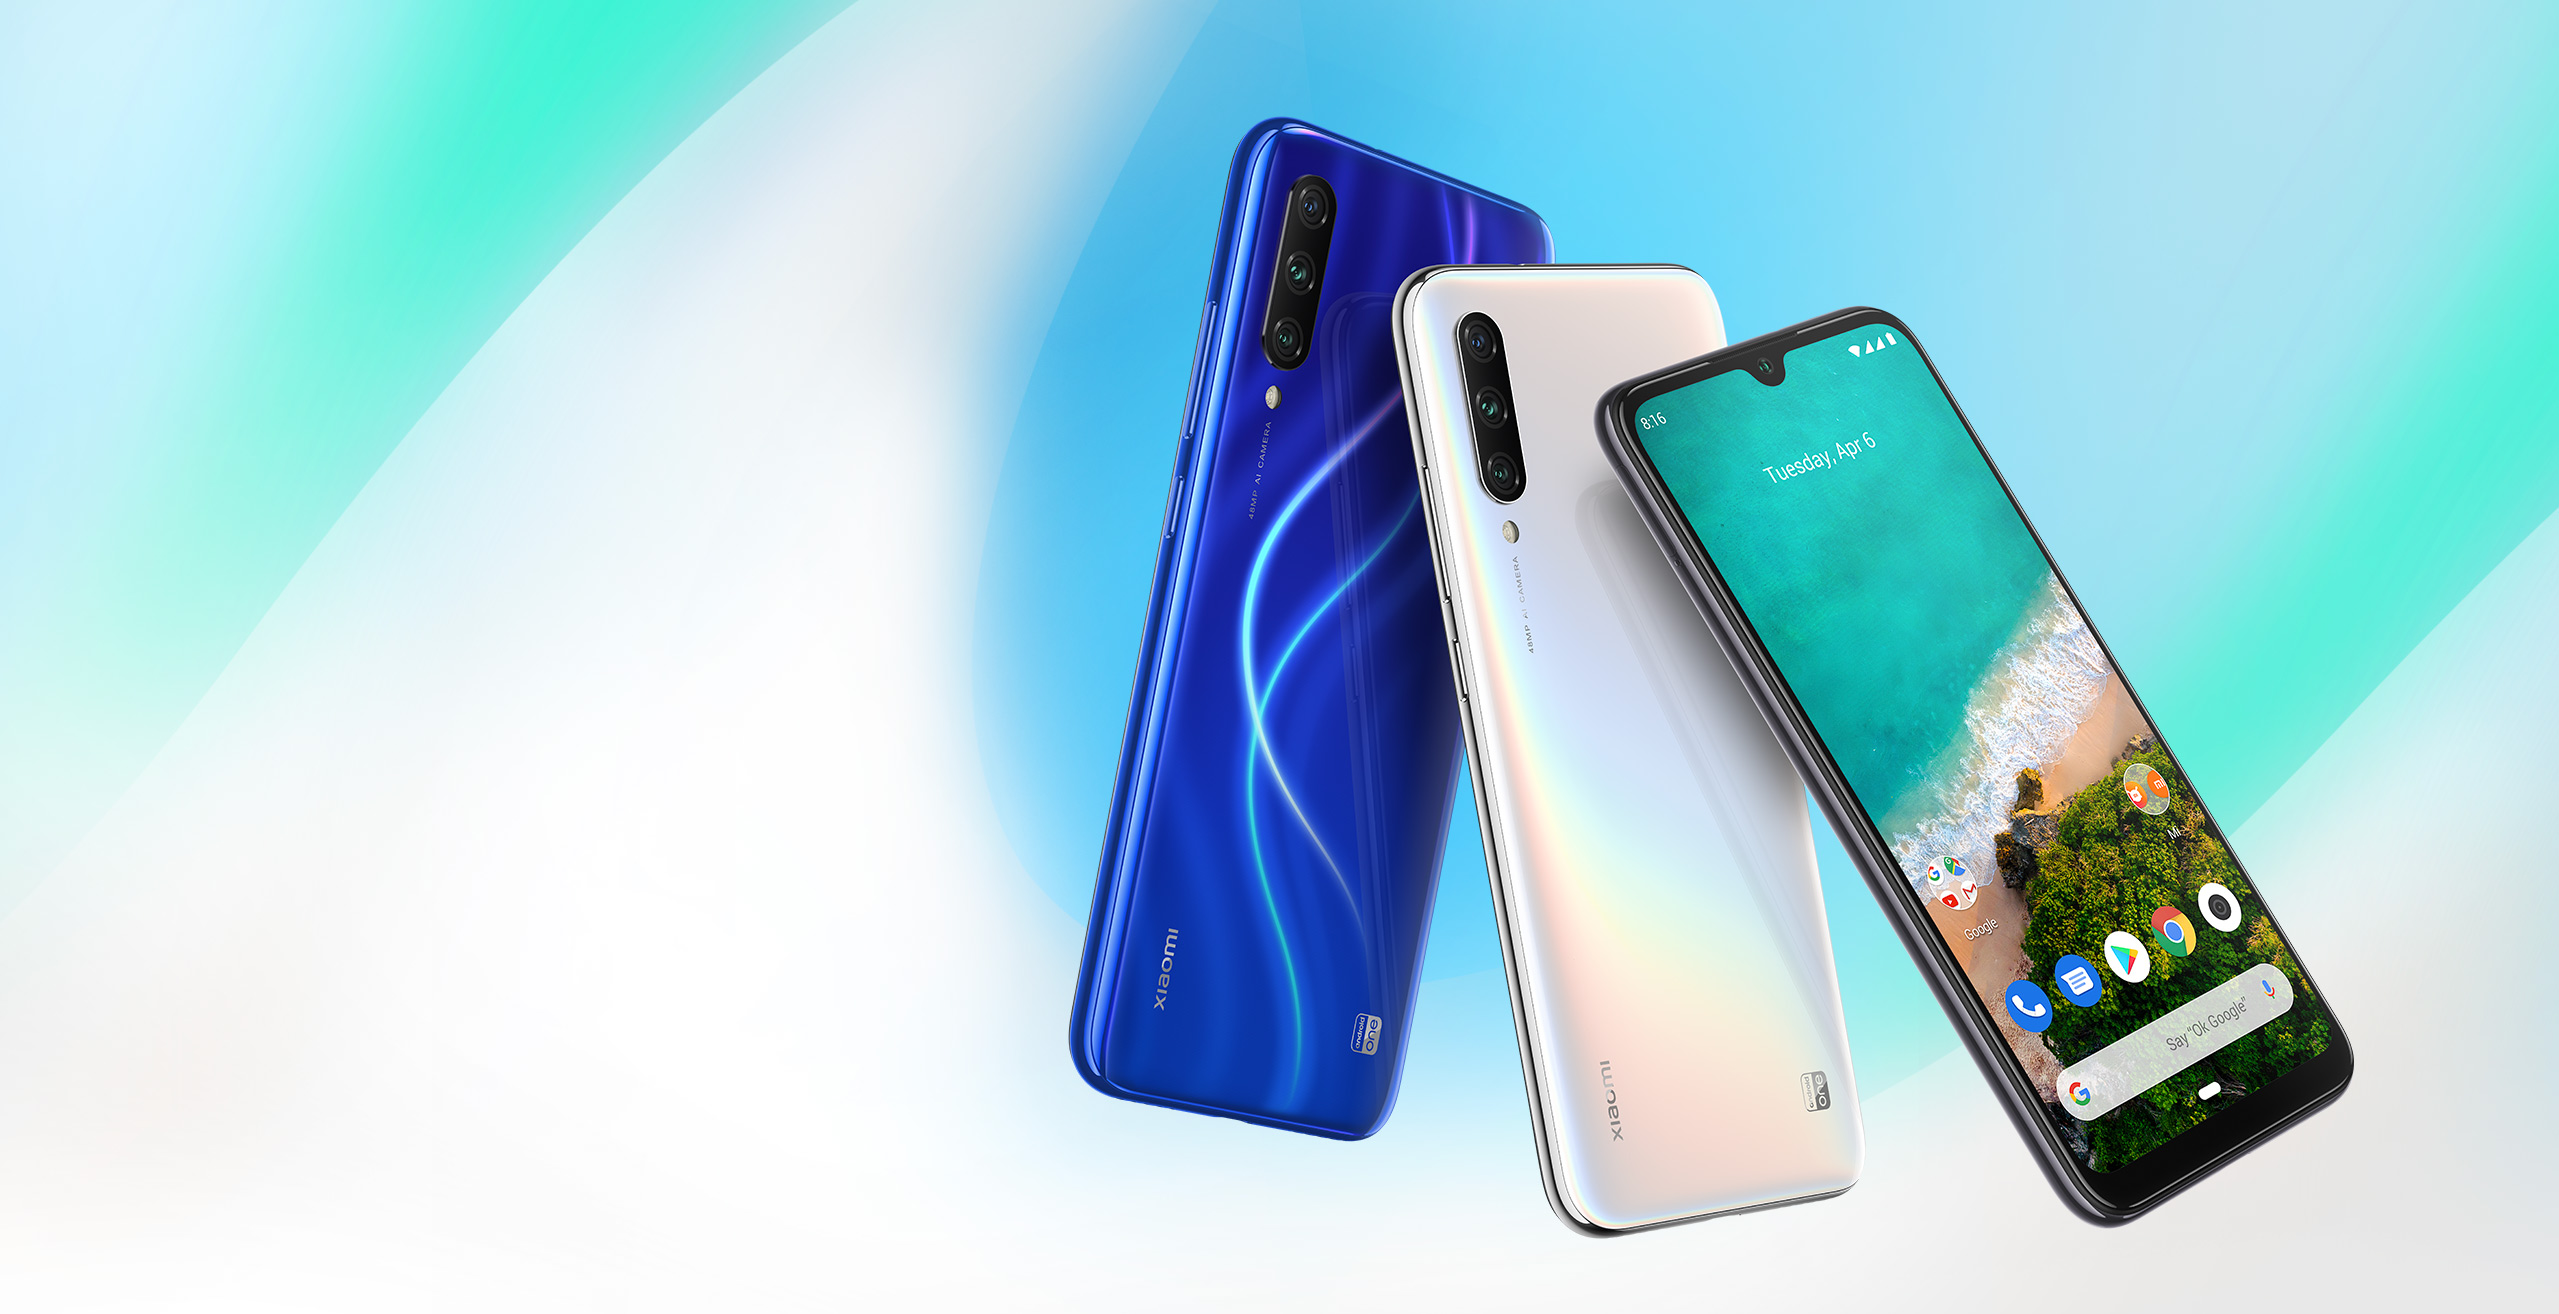 Xiaomi relaunches Android 11 update for Mi A3